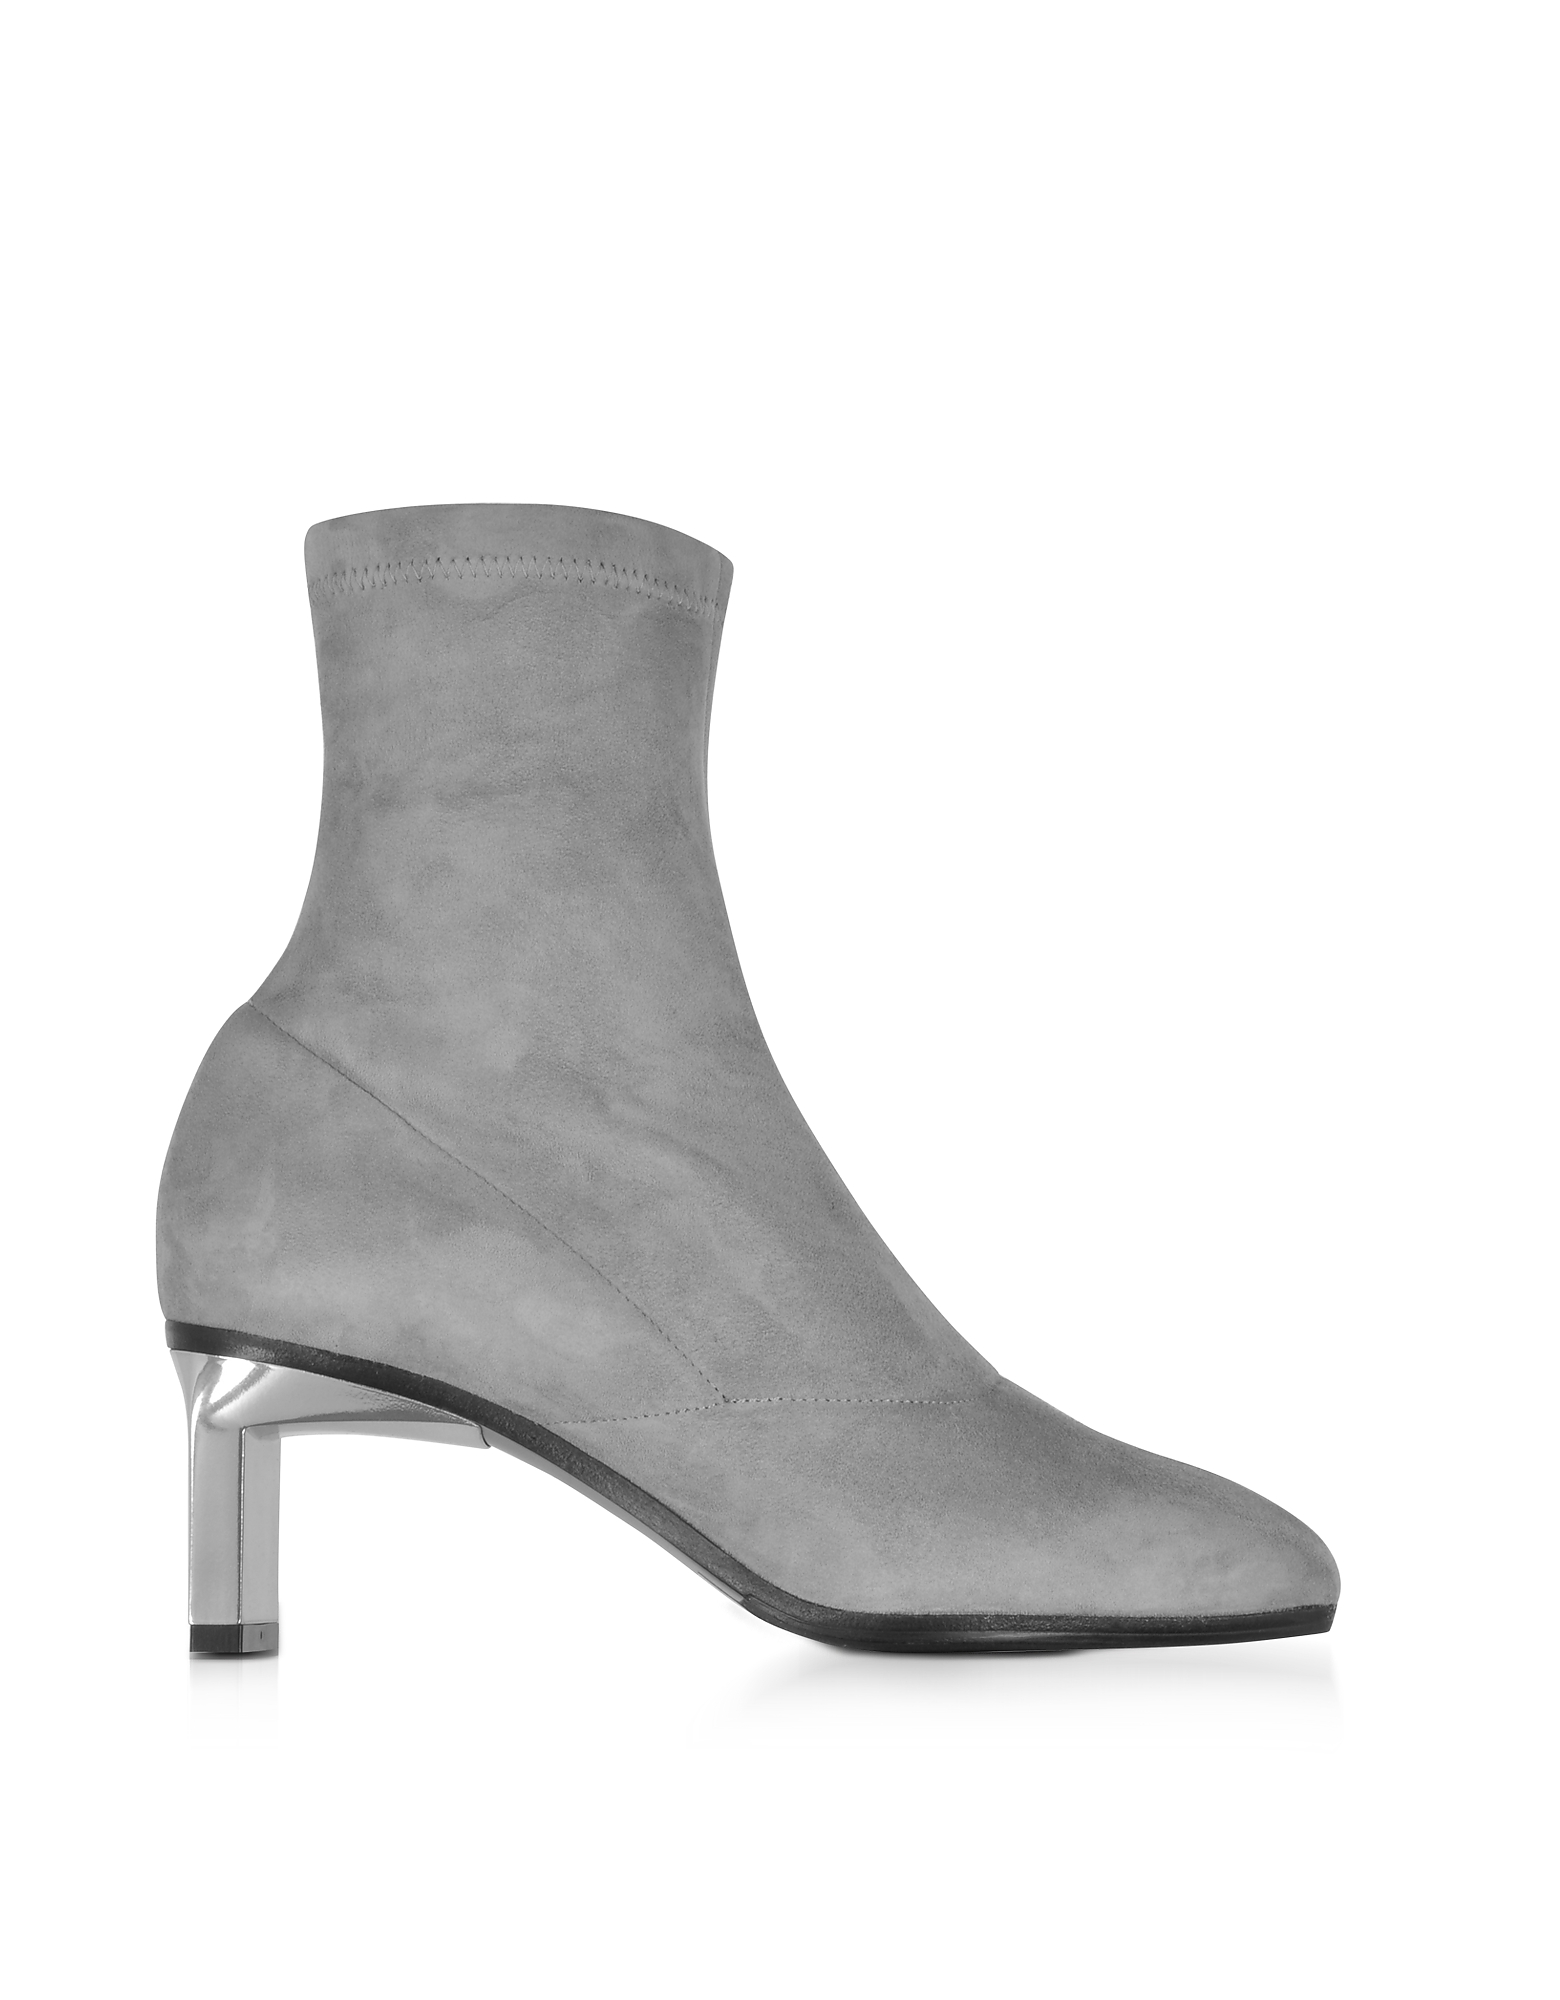 3.1 Phillip Lim Shoes, Blade Fog Suede Mid Heel Ankle Boots